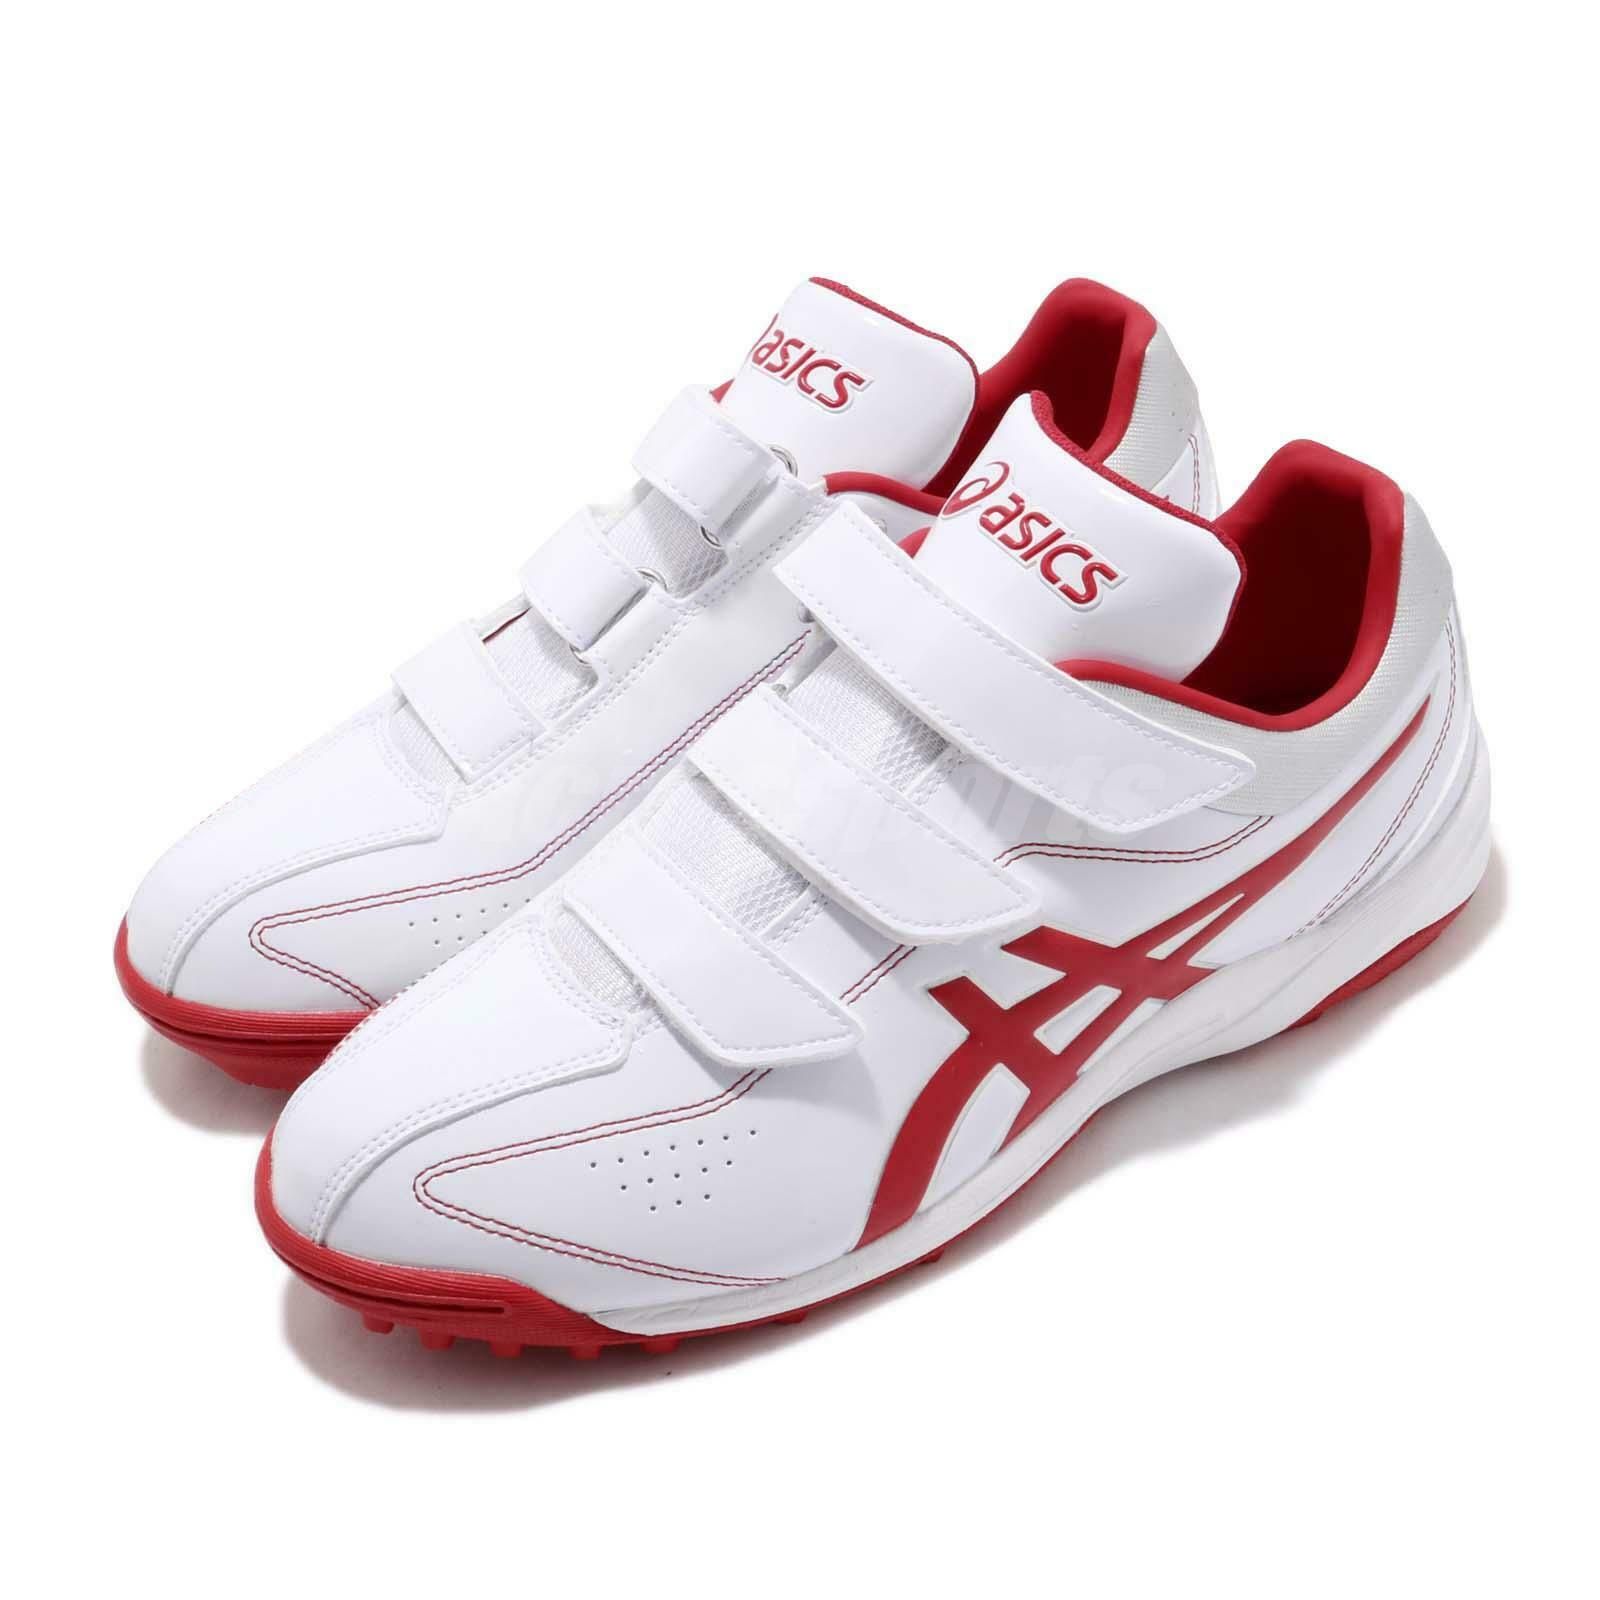 Asics Neorevive  TR White Red Strap Men Baseball Softball shoes SFT144-0123  new listing